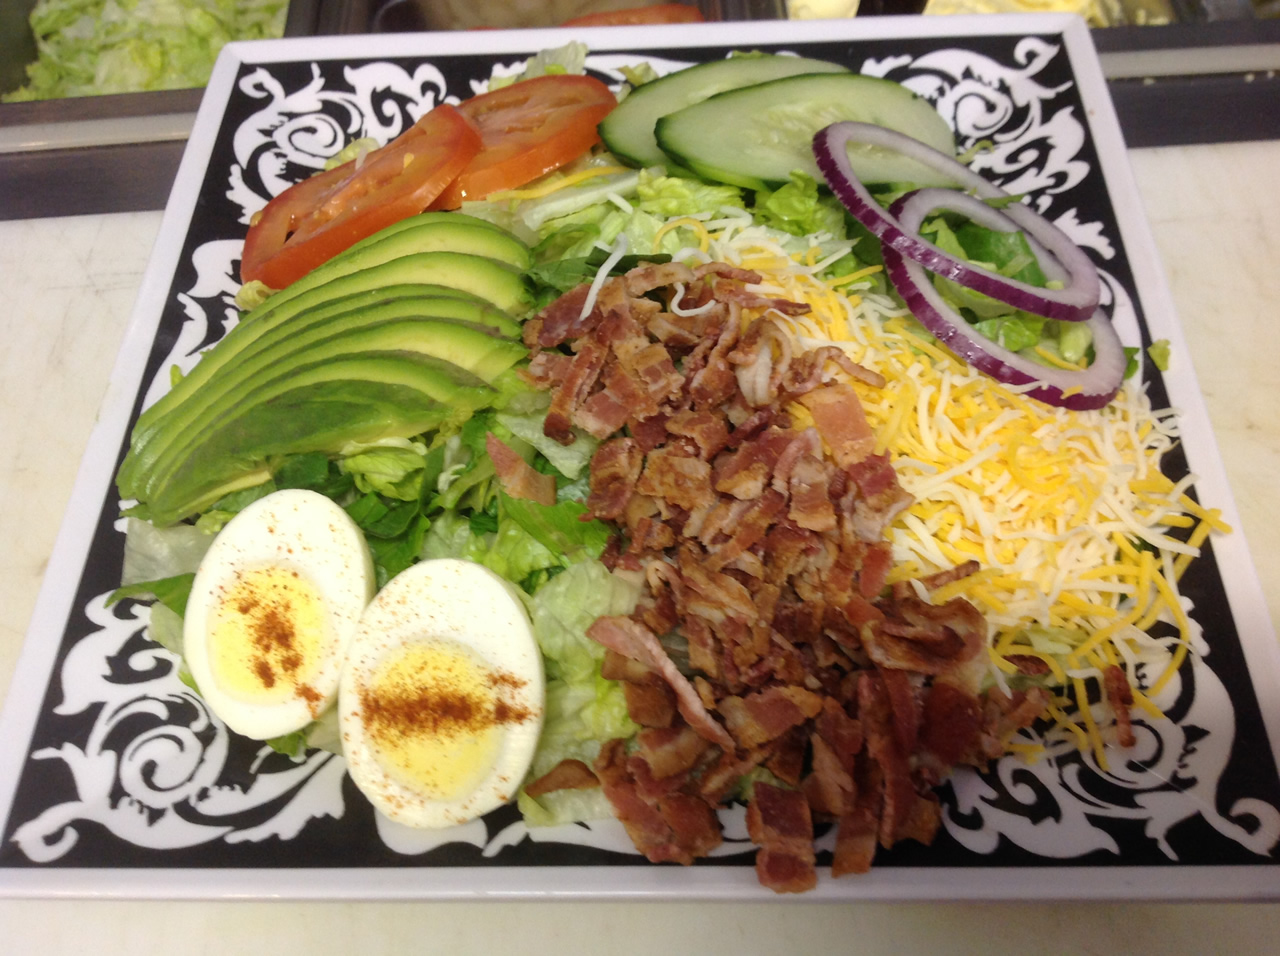 Picture of a tasty salad at Sassy's Restaurant, Glamis North Hot Springs Resort